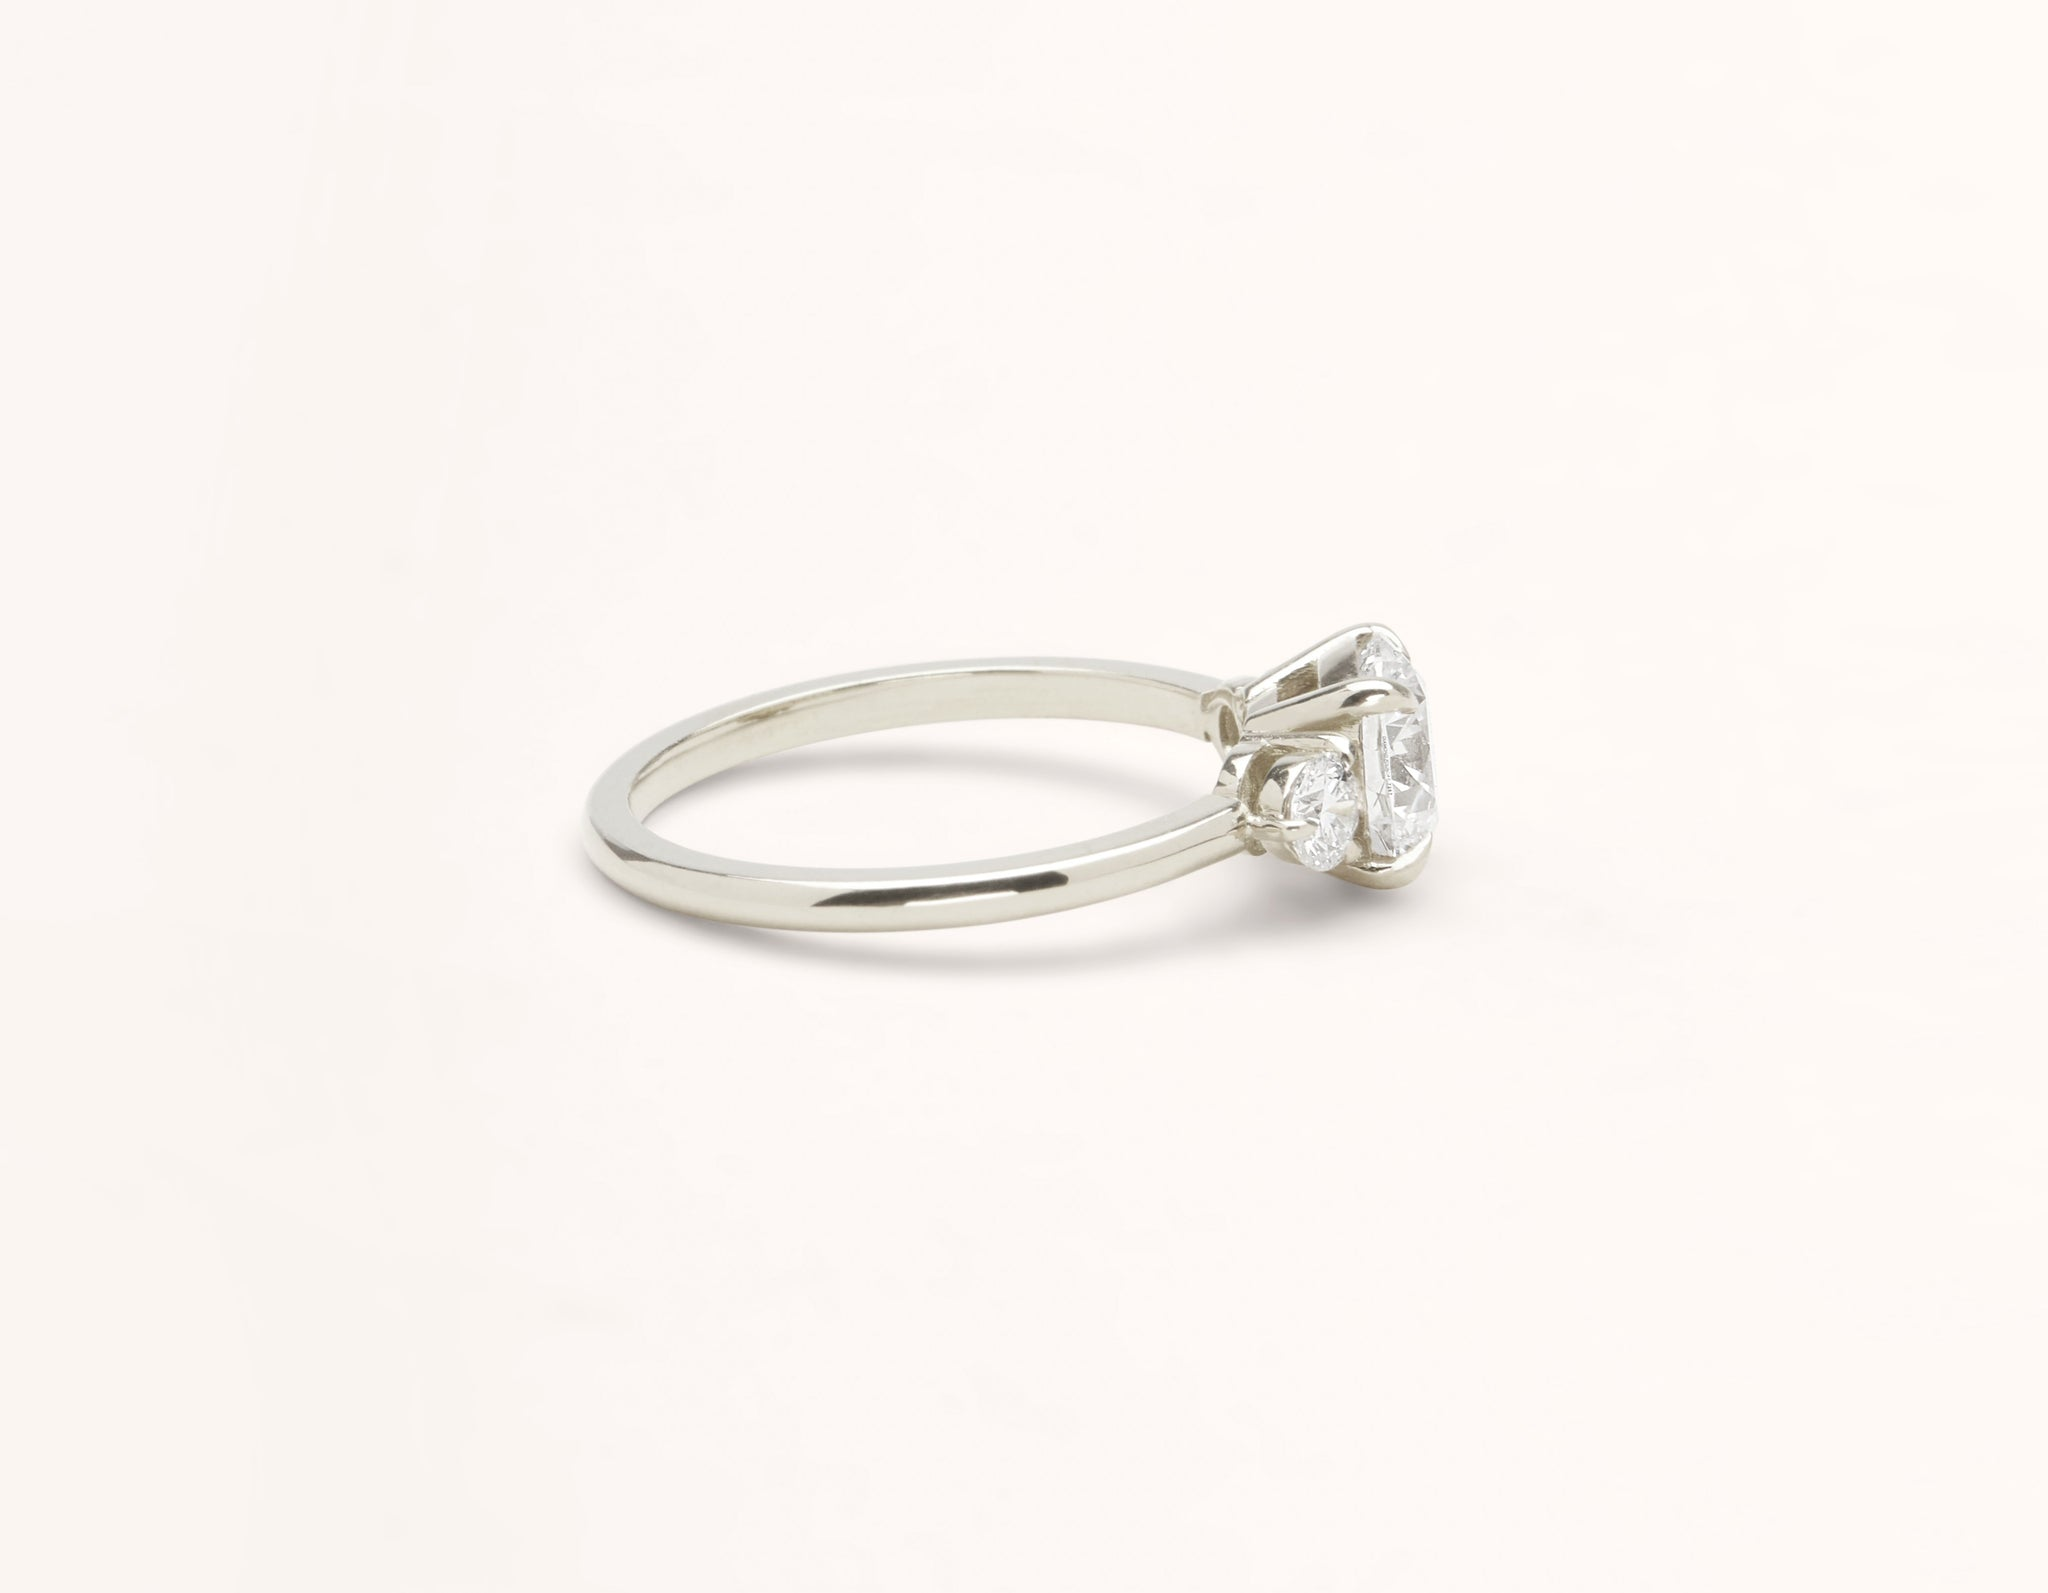 Simple modern 18k solid white gold 1 carat Three Stone diamond engagement ring Vrai & Oro